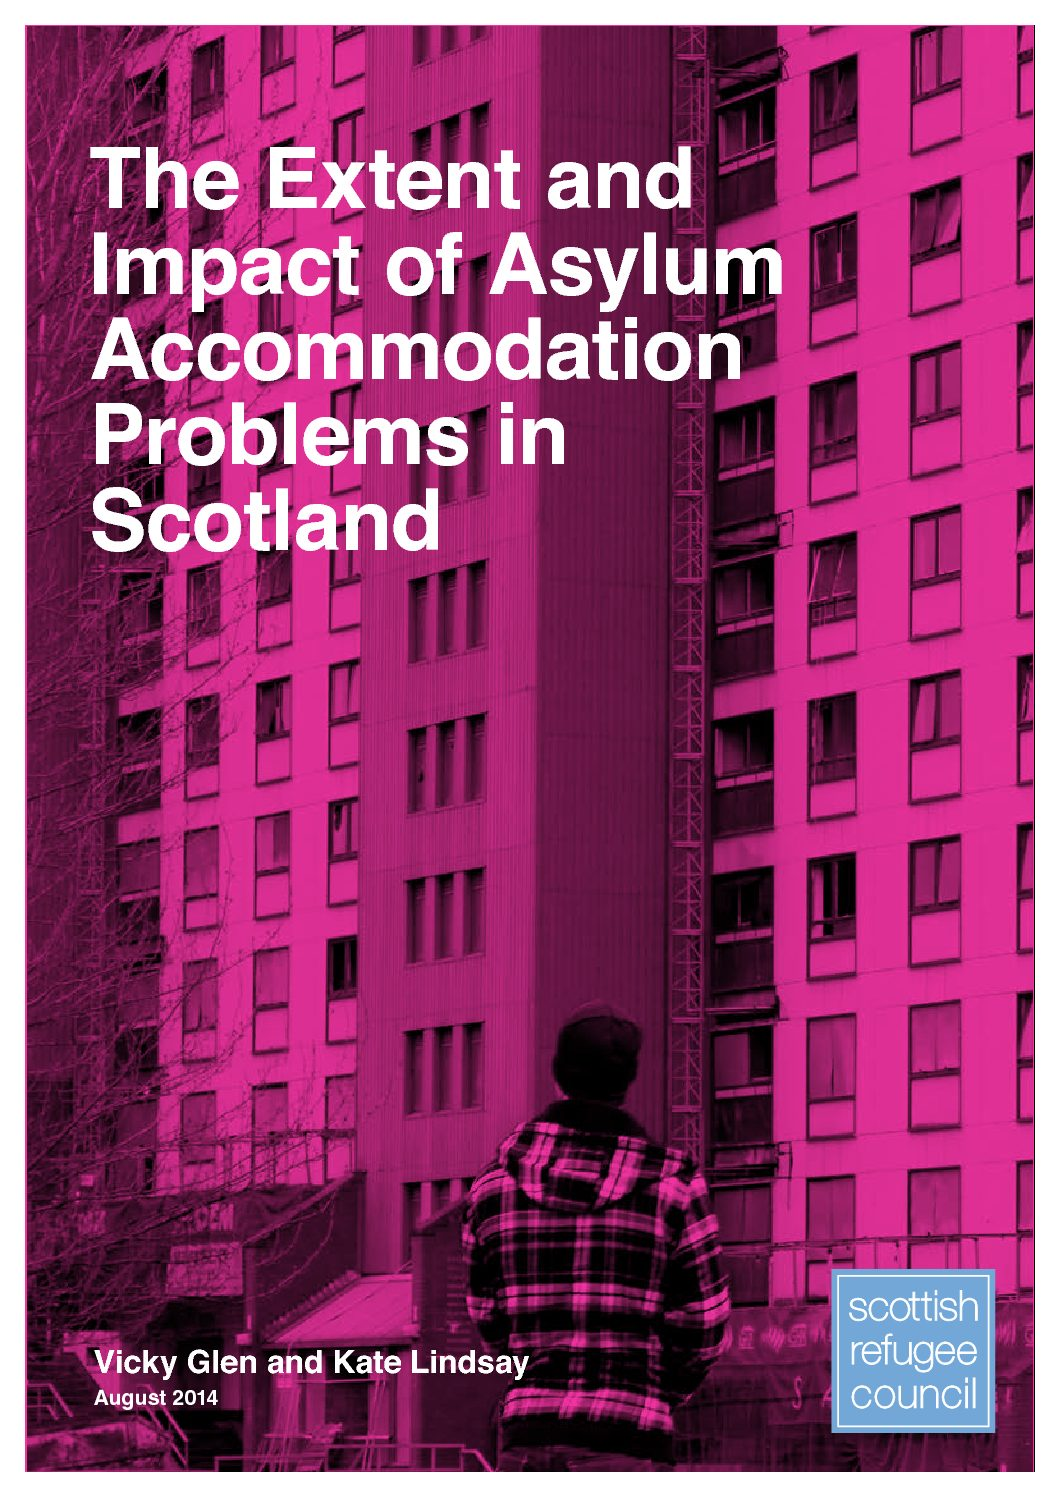 The-Extent-and-Impact-of-Asylum-Accommodation-Problems-in-Scotland-full-report-August-2014-pdf